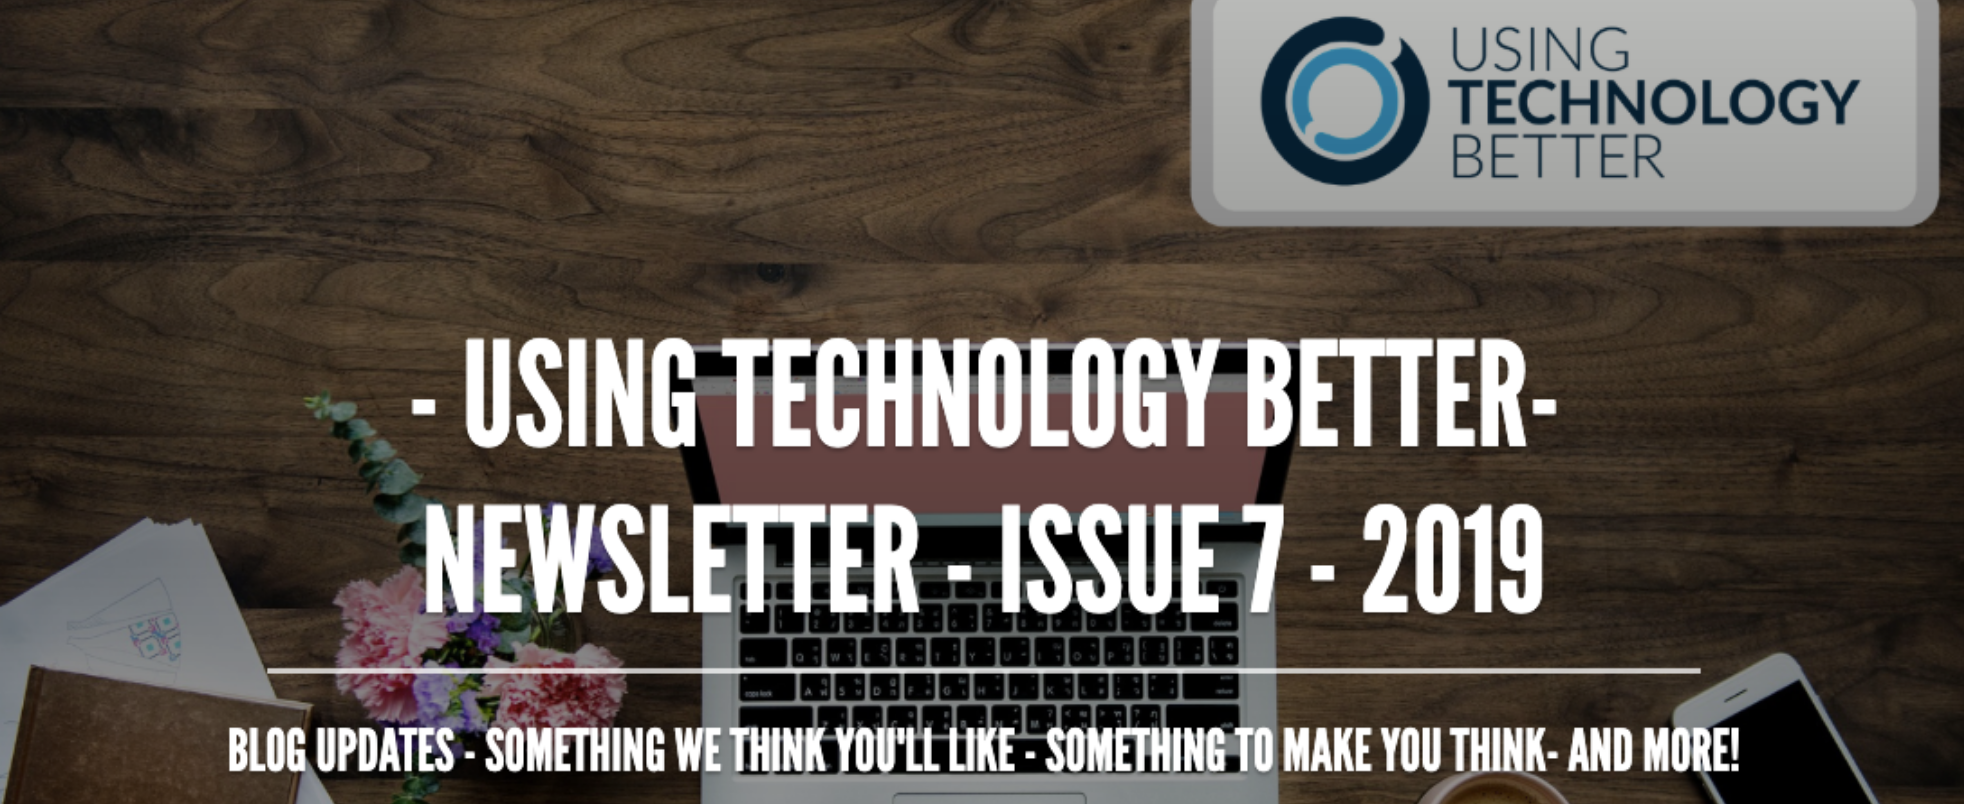 Newsletter Issue 7 - 2019